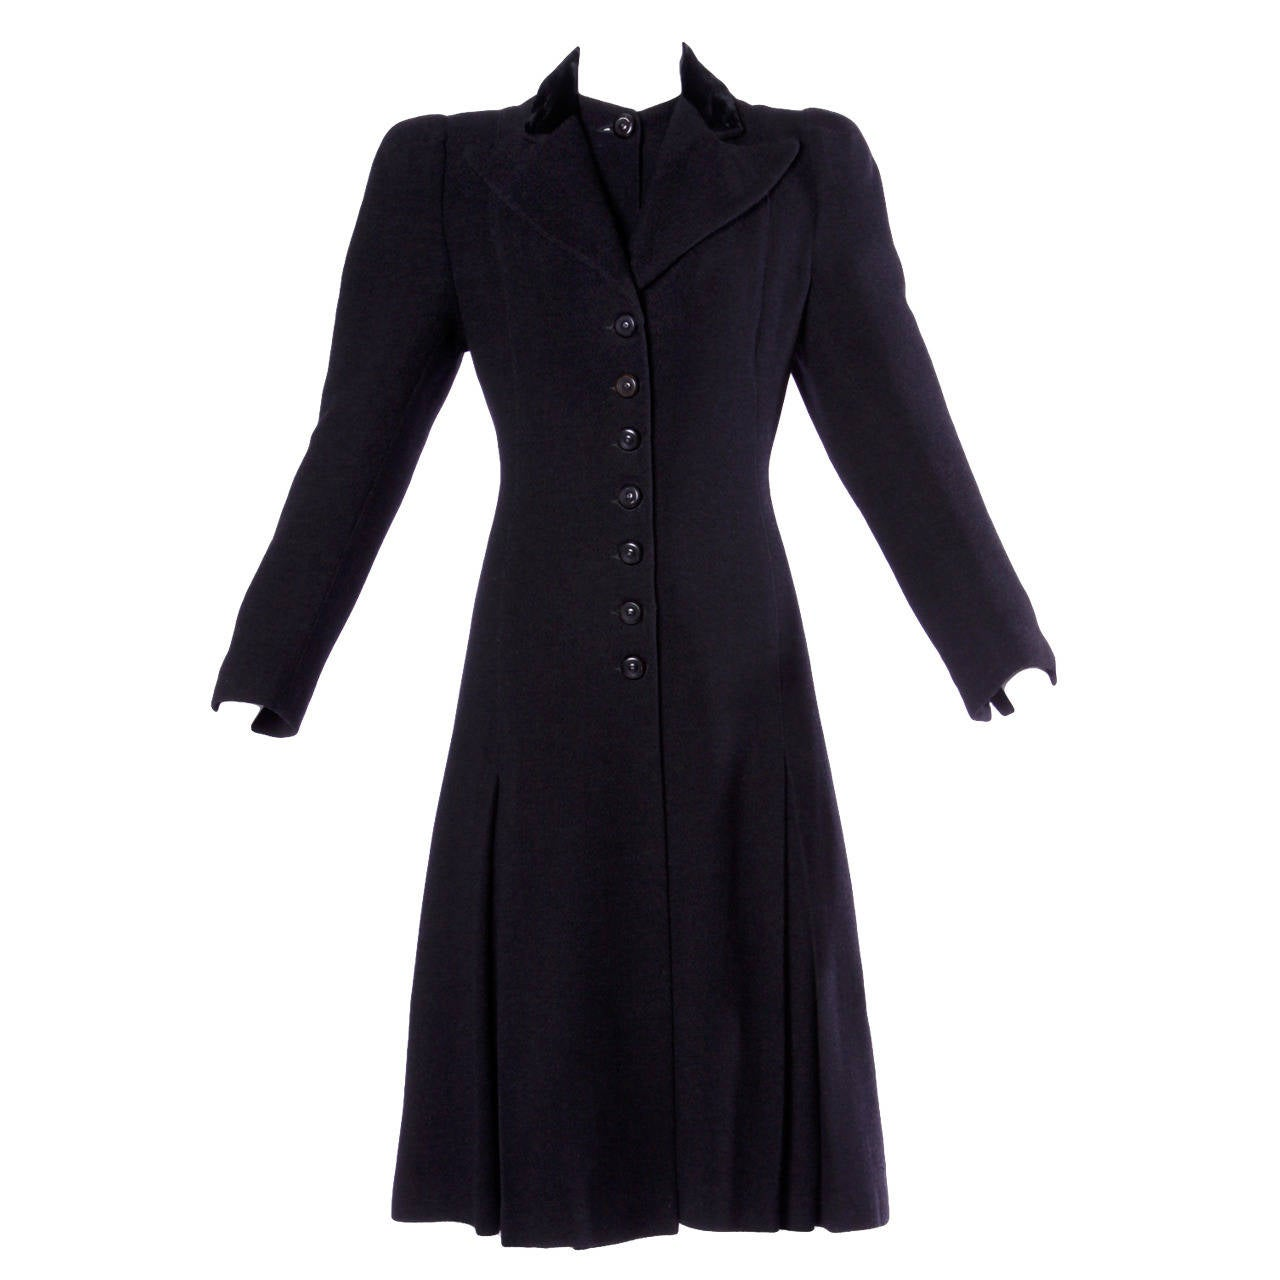 Elegant Vintage 1940s 40s Black Wool Princess Coat with Bold Shoulders For Sale